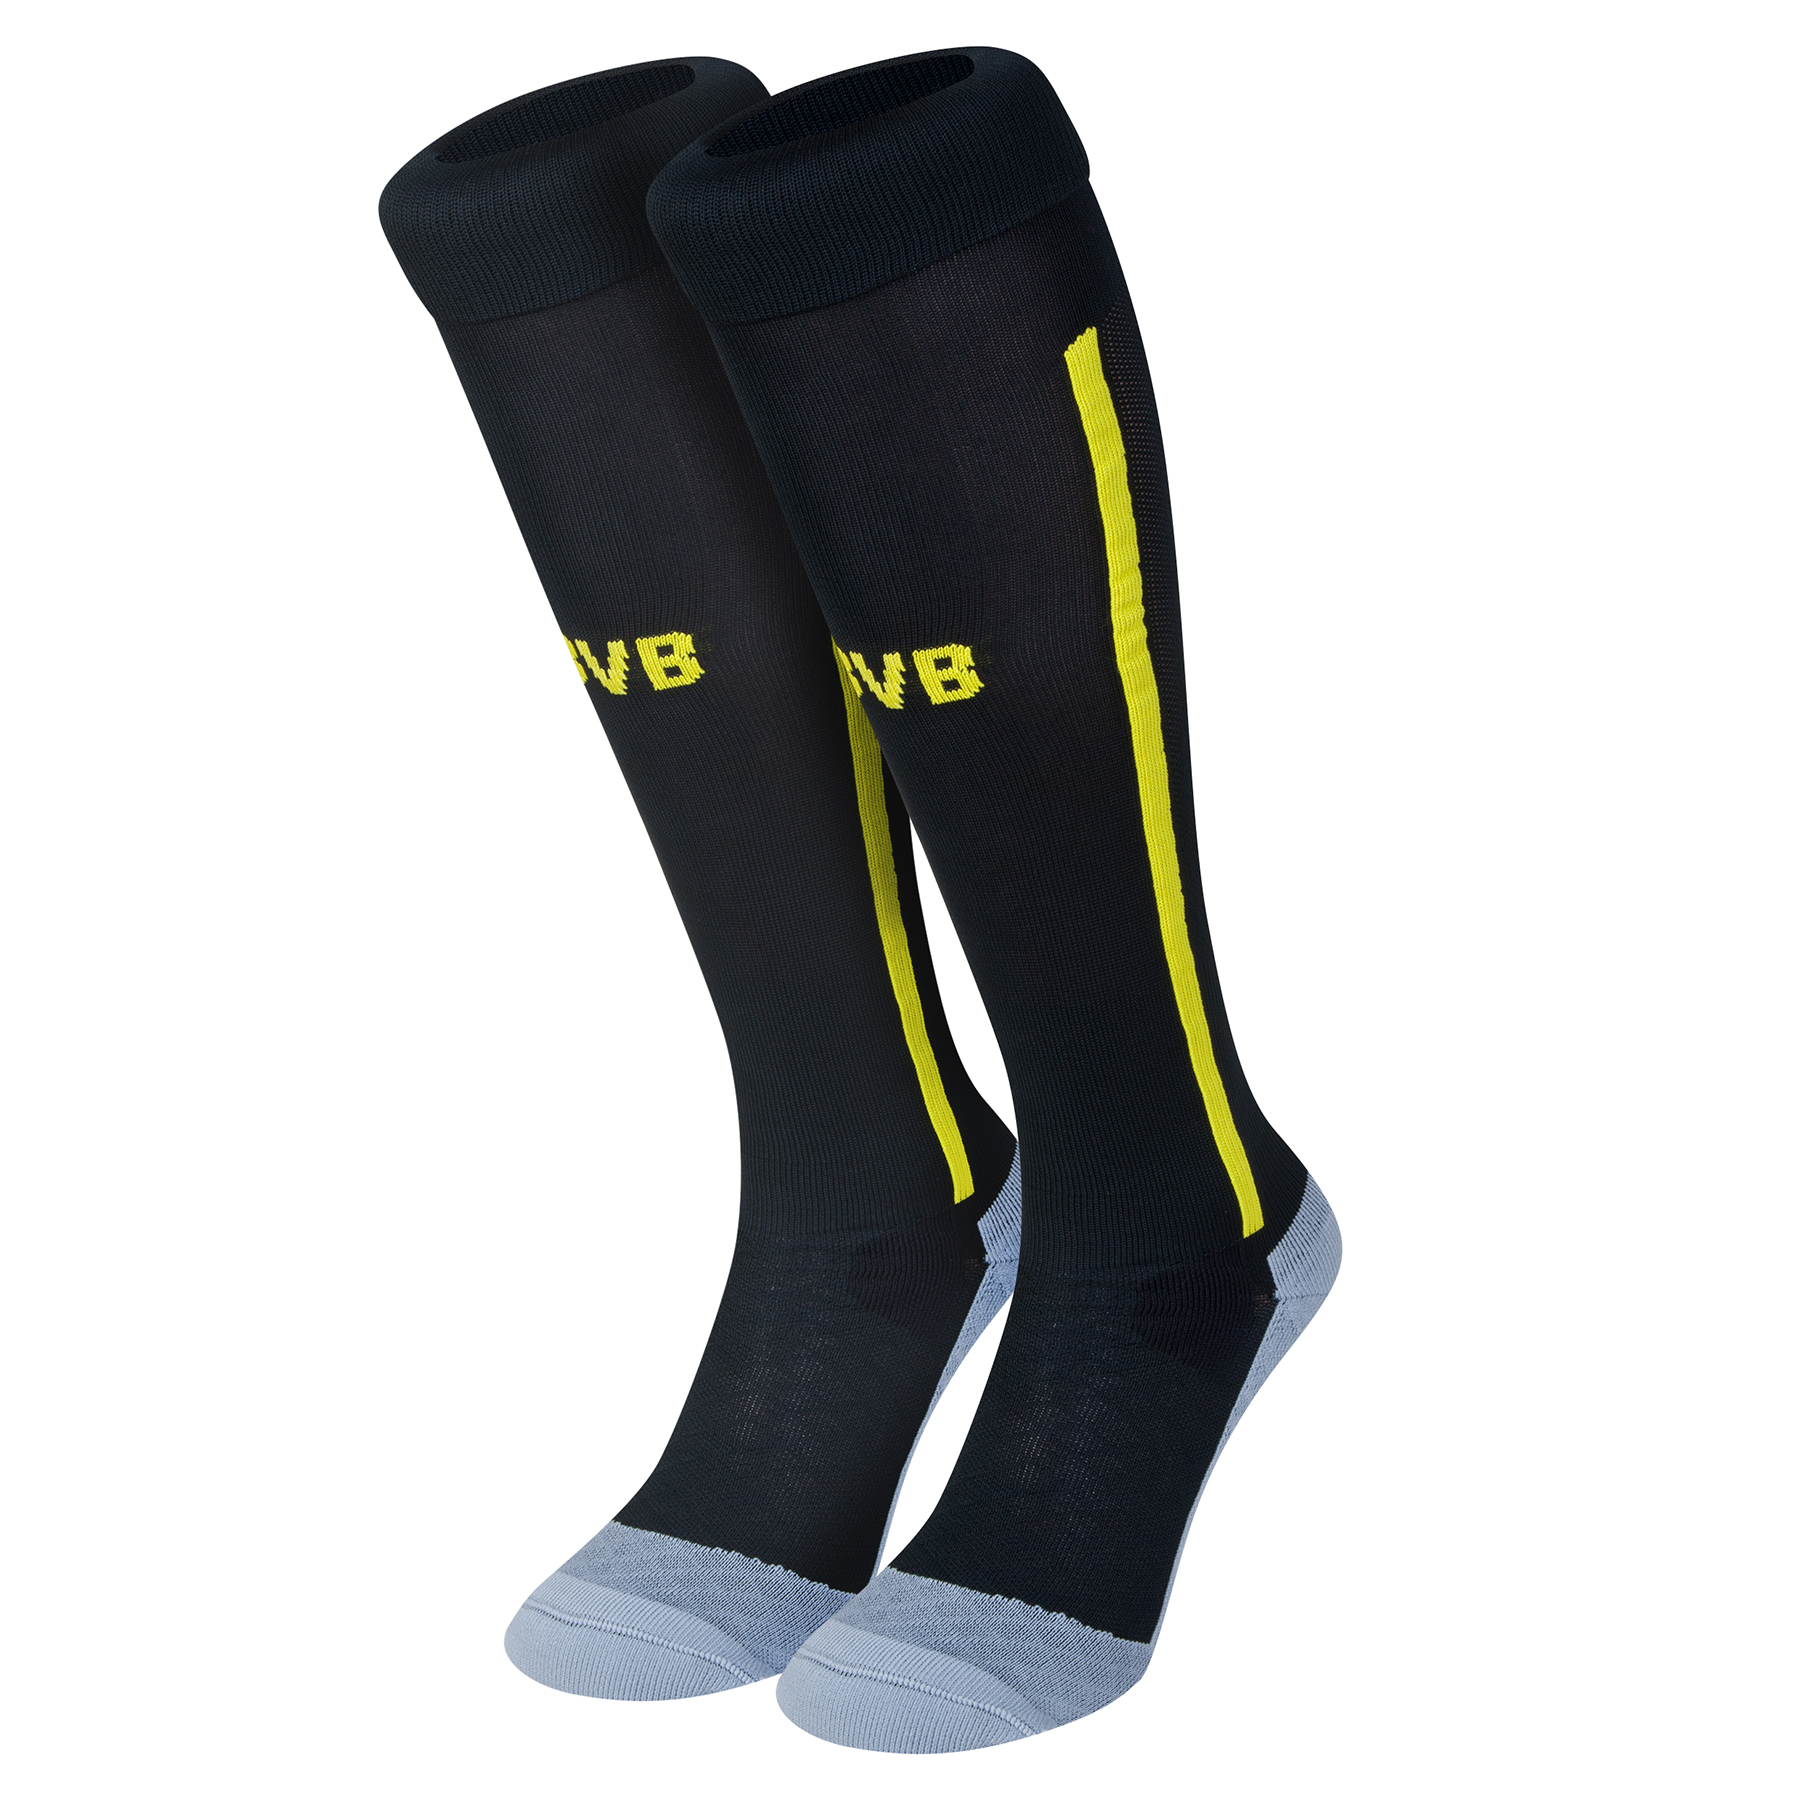 BVB Away Socks 2014/15